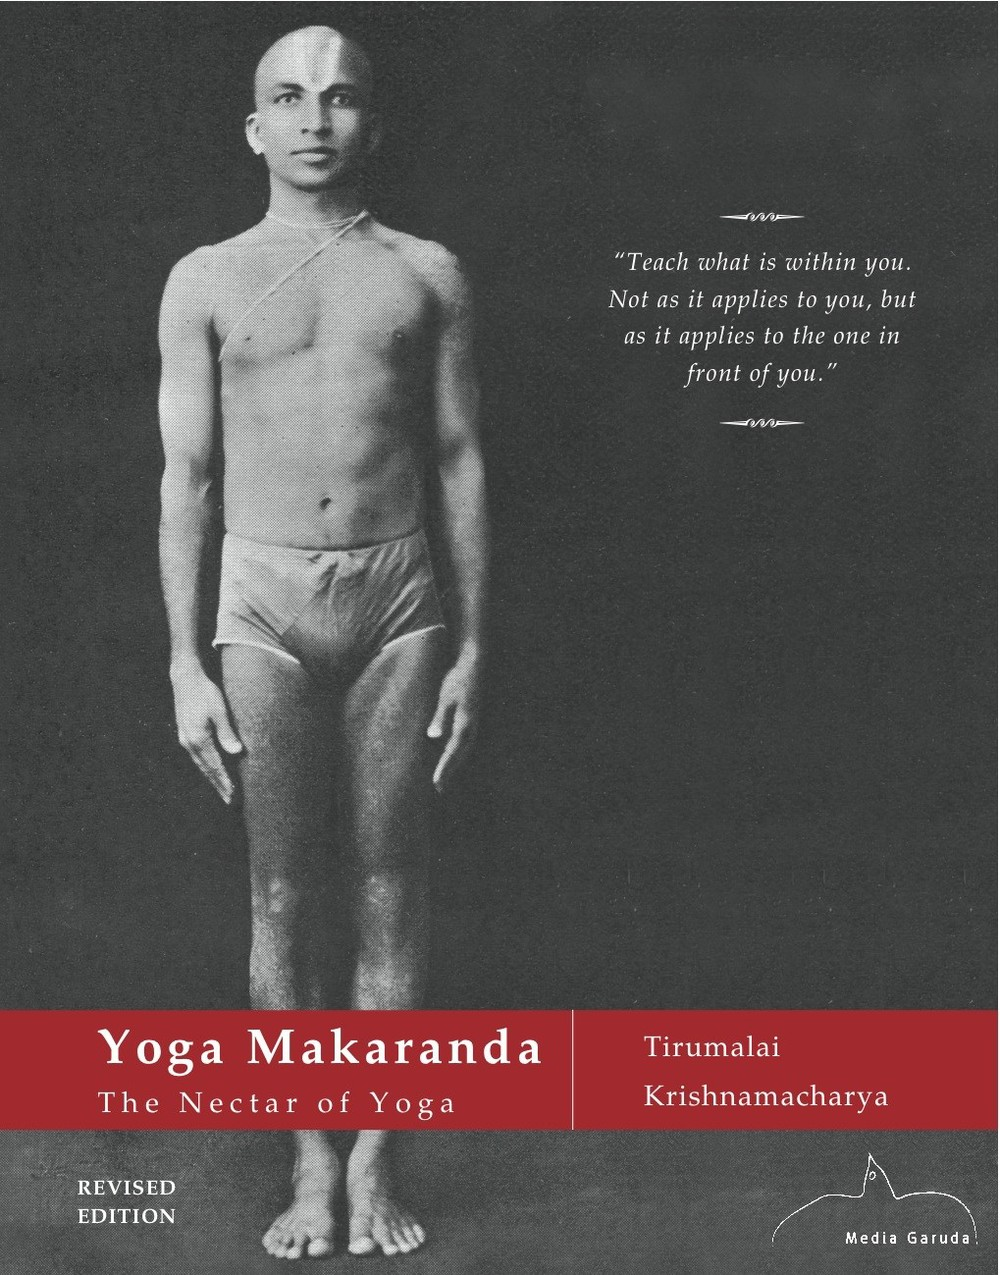 Yoga Makaranda | The Nectar of Yoga